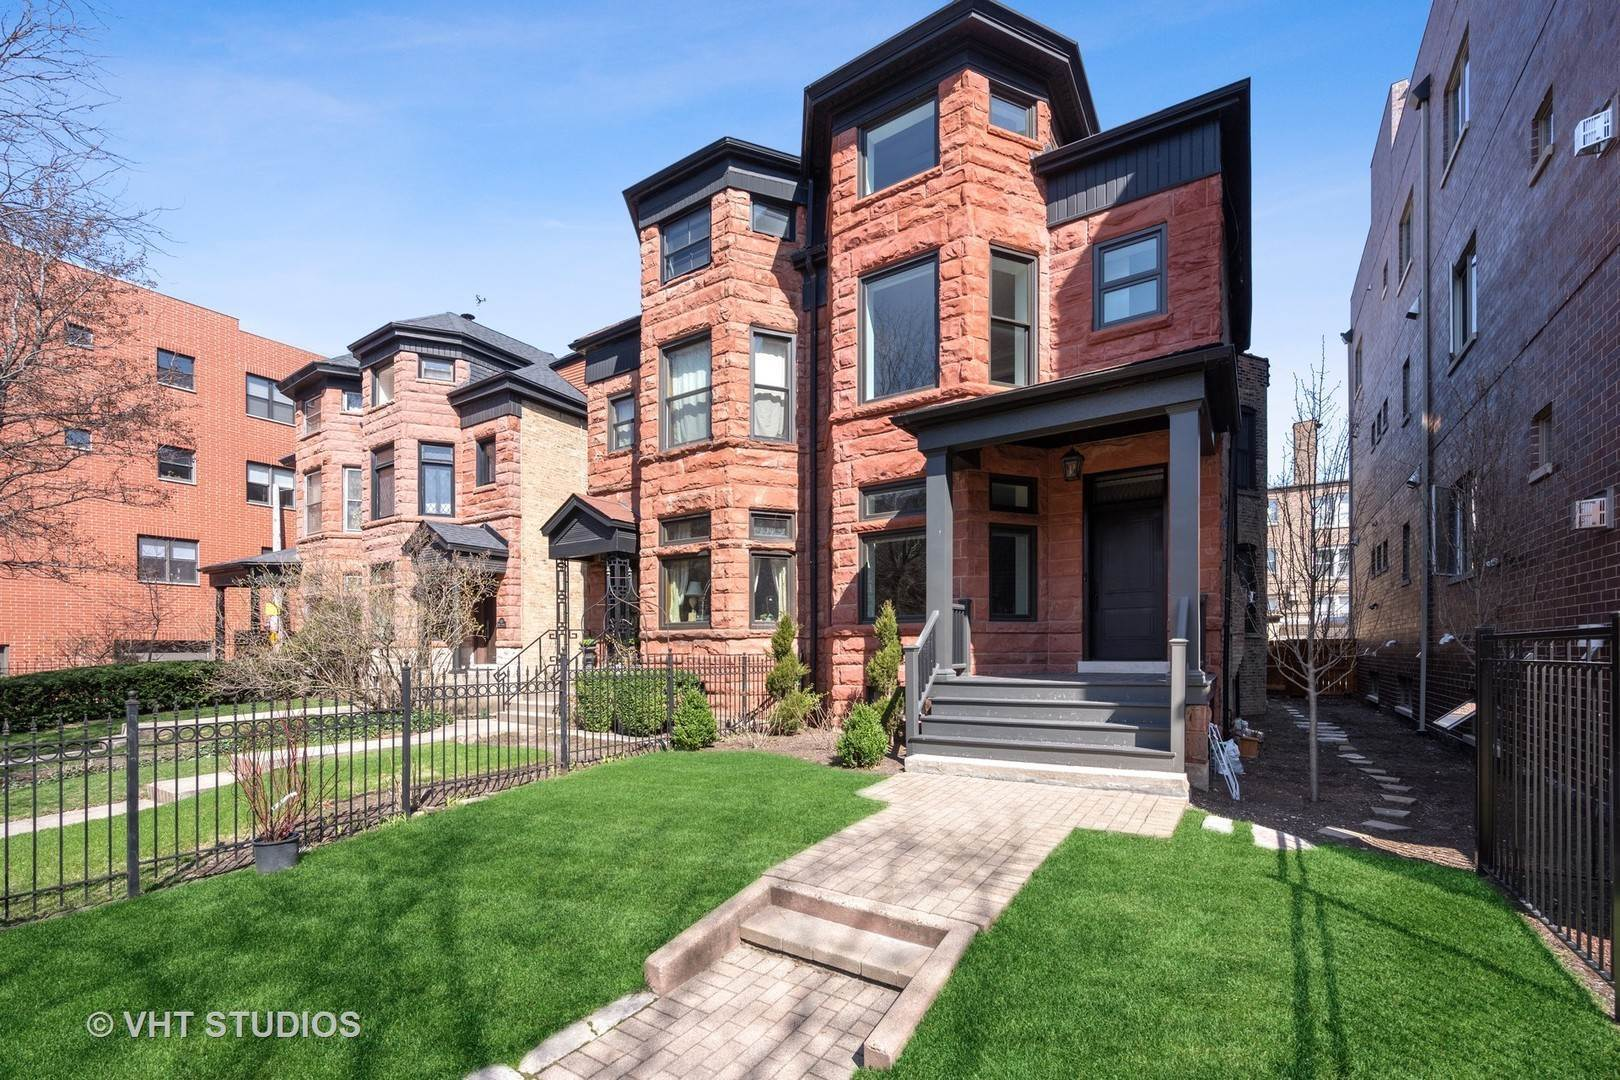 Single Family Homes for Sale at 4139 N Kenmore Avenue Chicago, Illinois 60613 United States